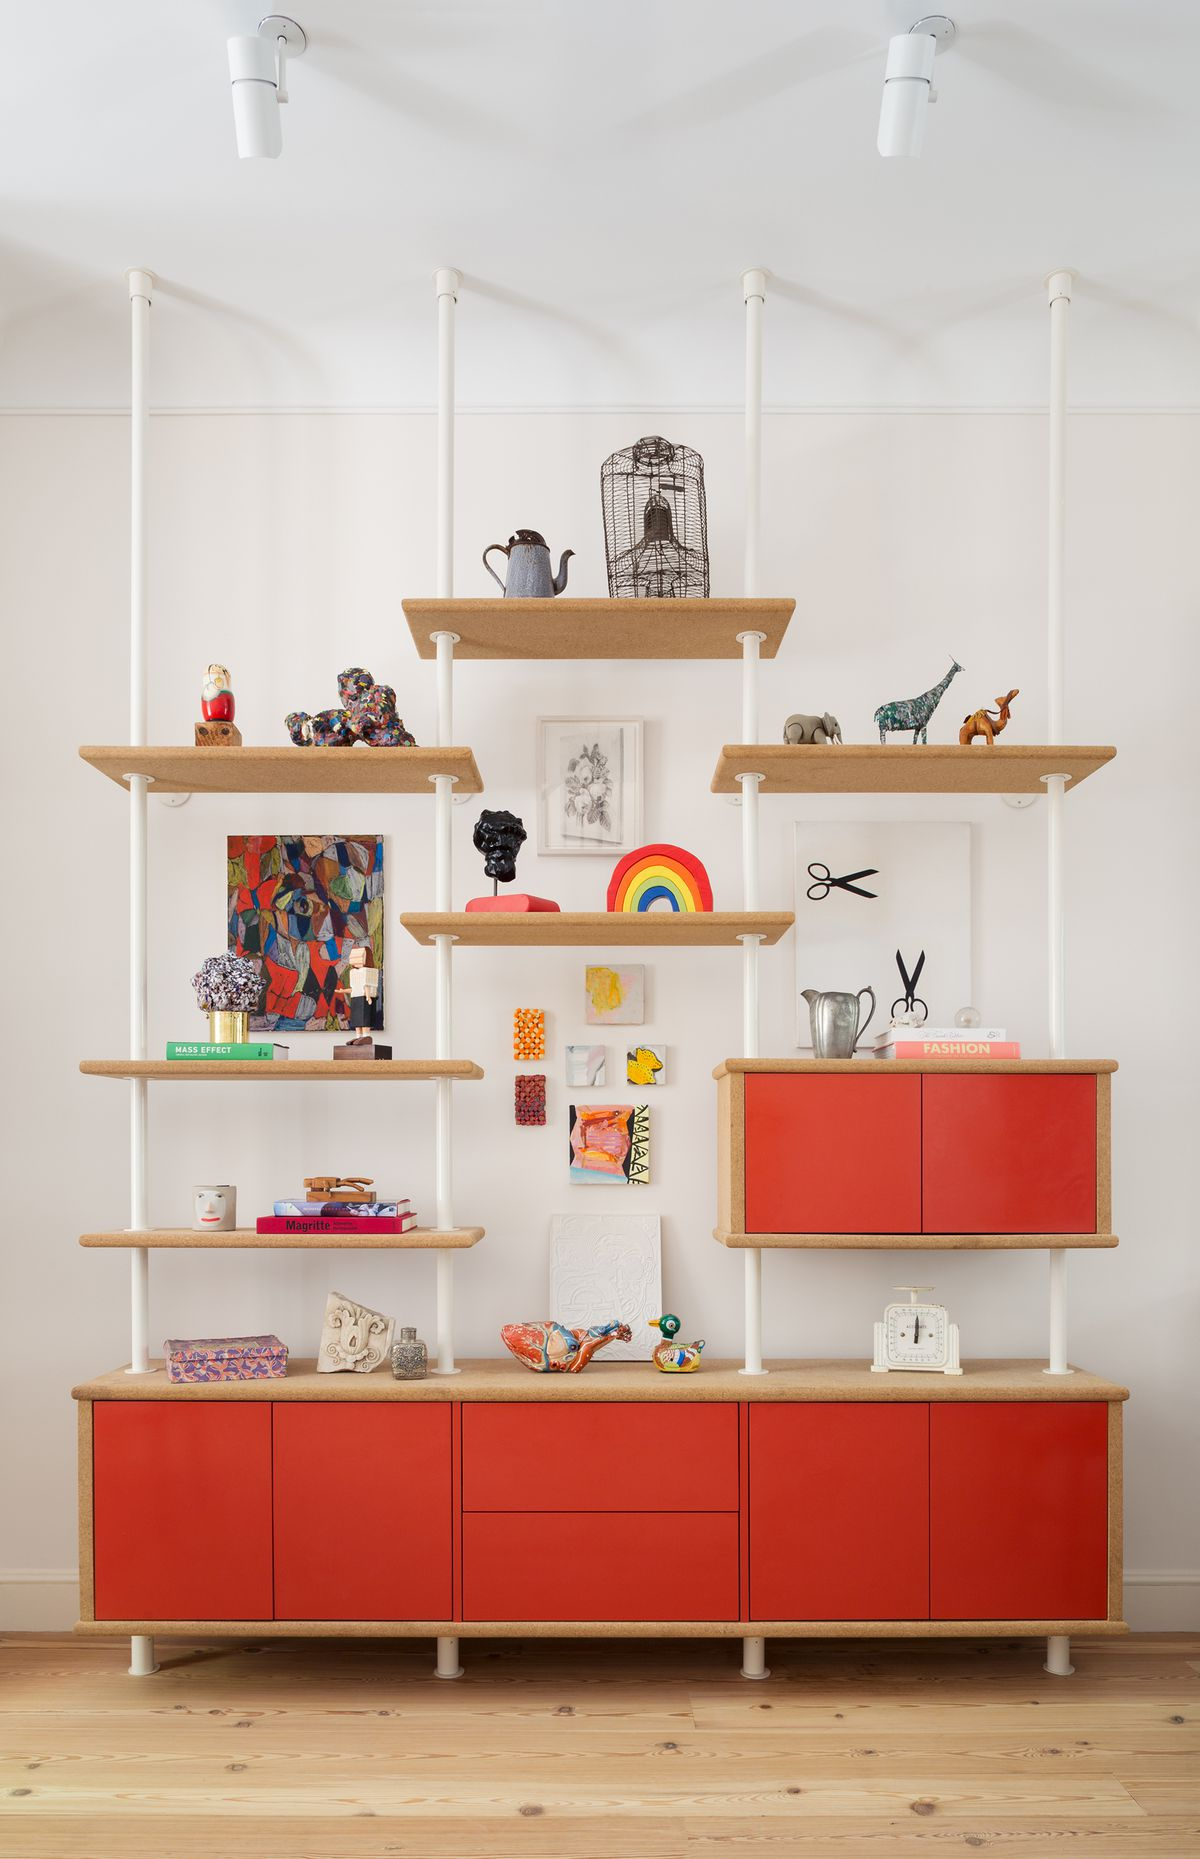 A shelving unit which has red drawers and wooden shelves. On the shelves are various objects.